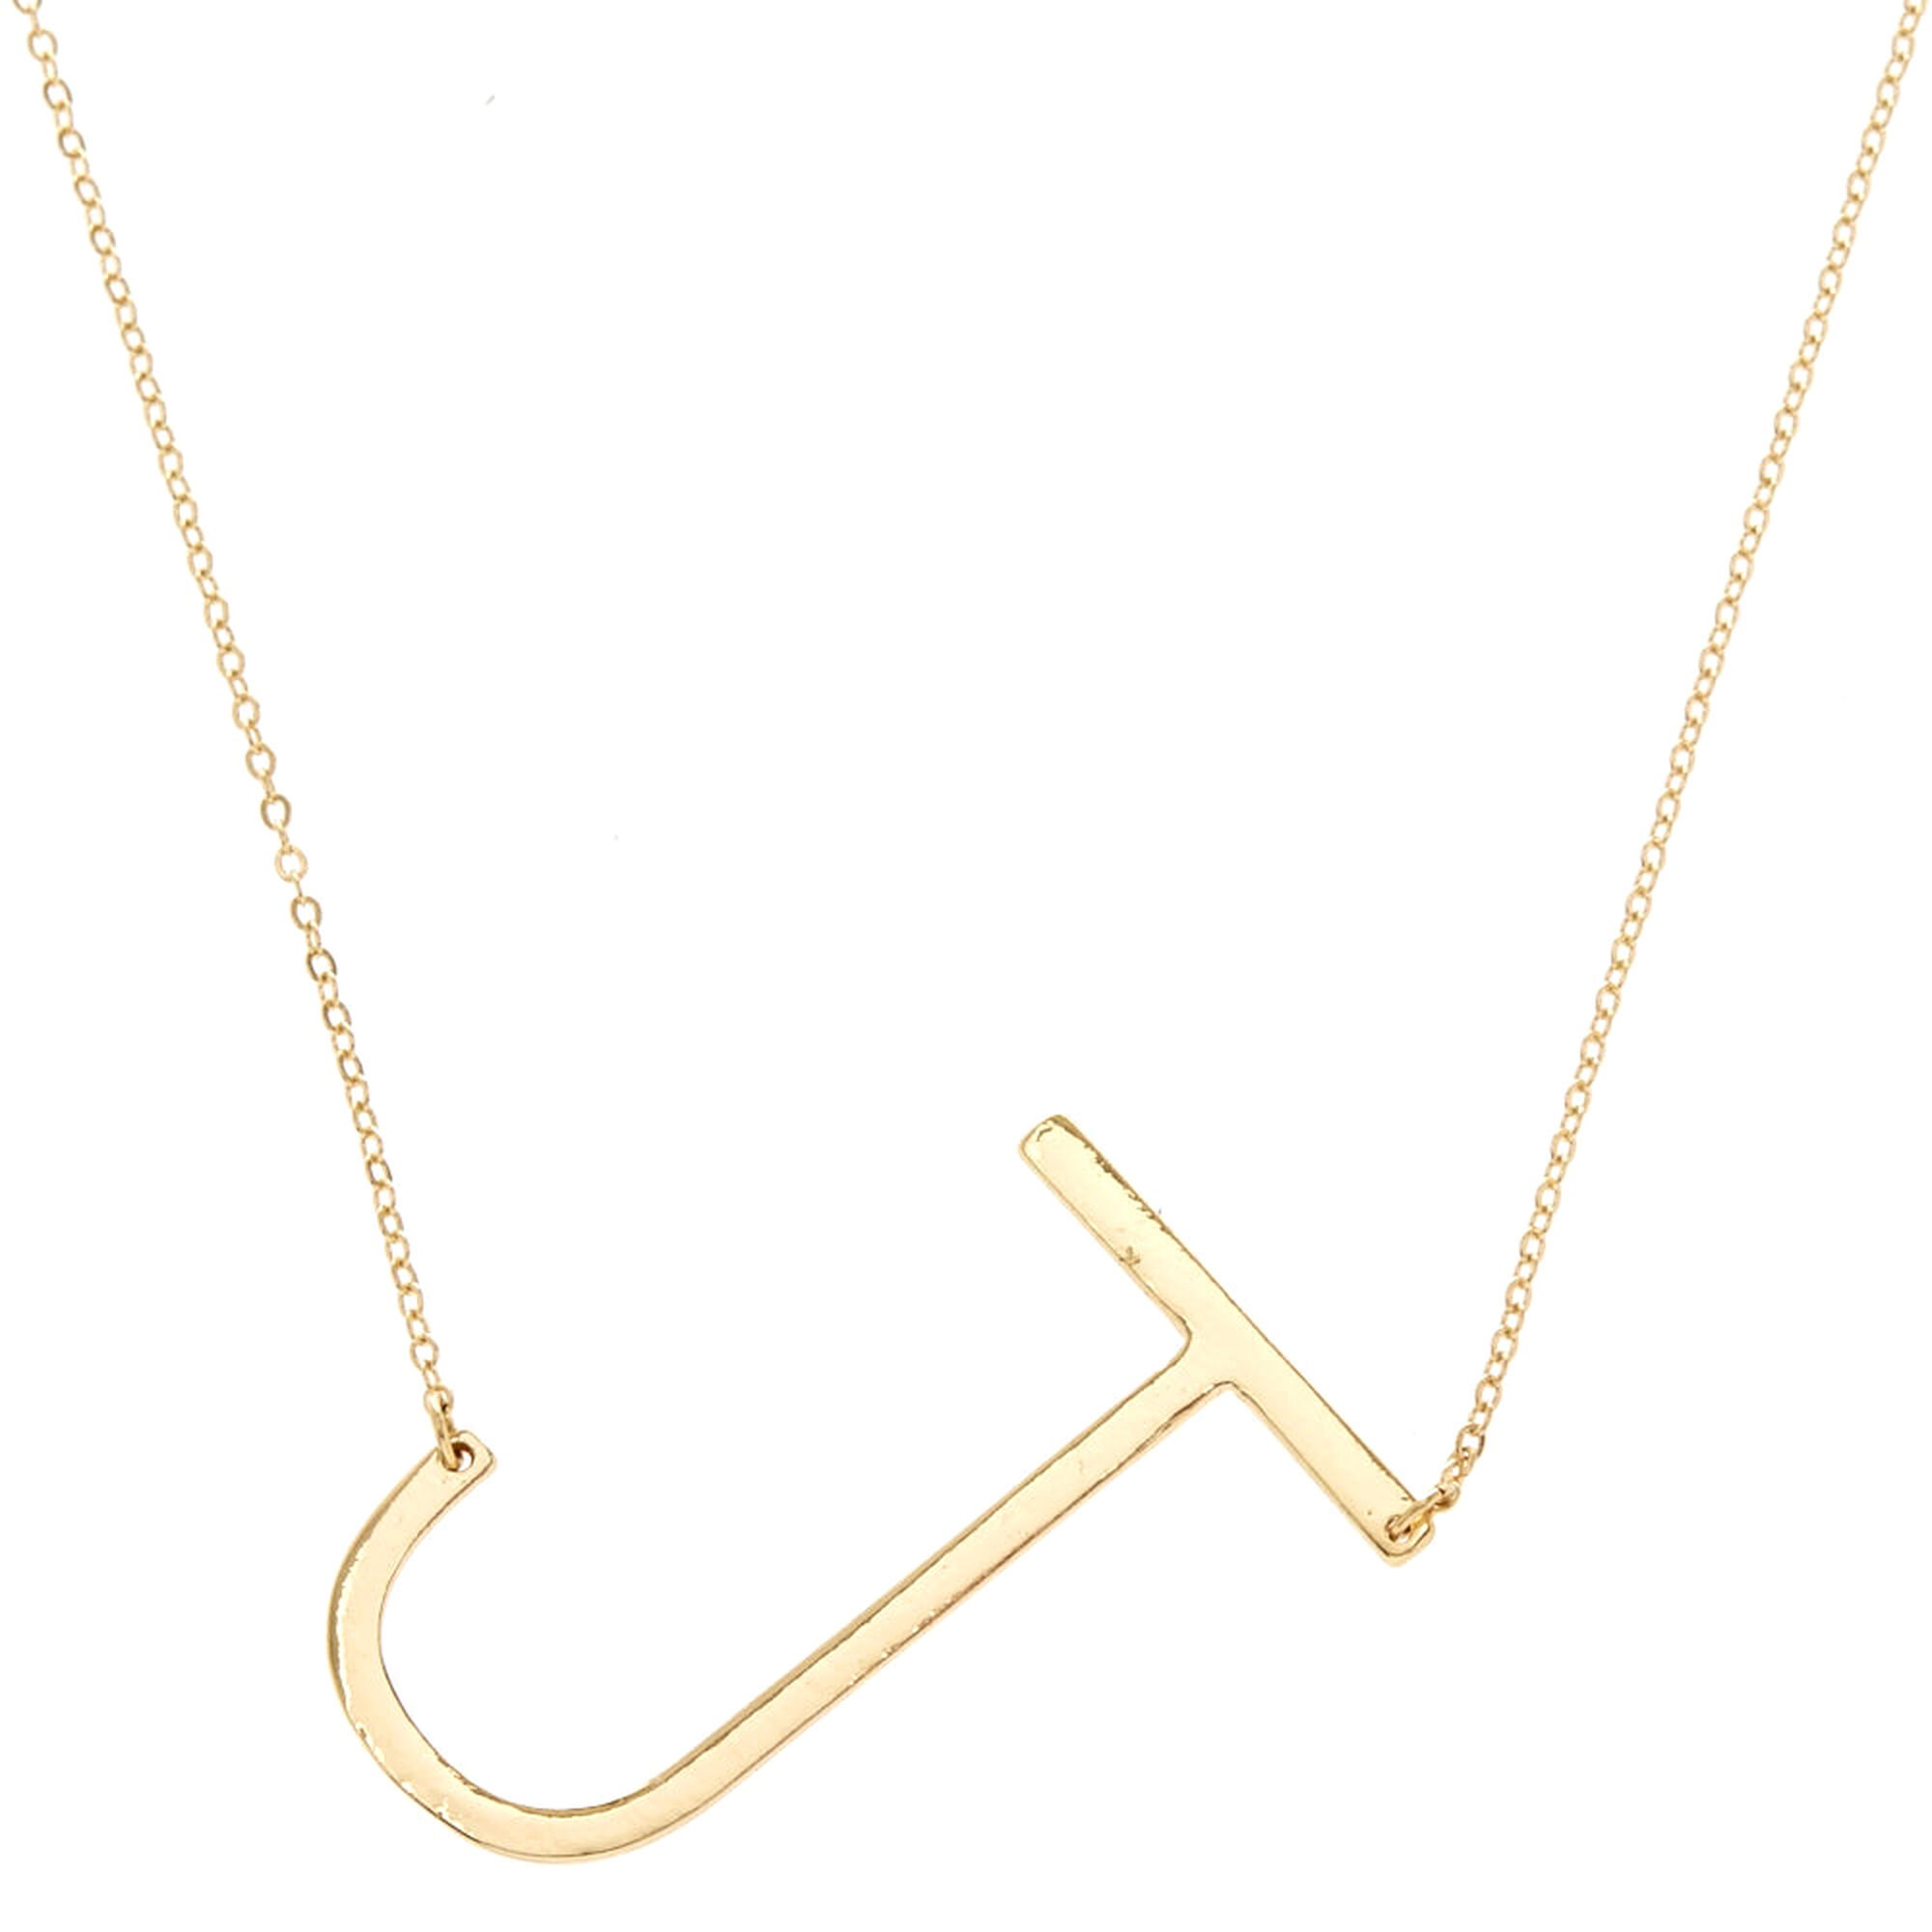 charm in necklaces gold main diamonds initial products pdp necklace with women pendant and chains